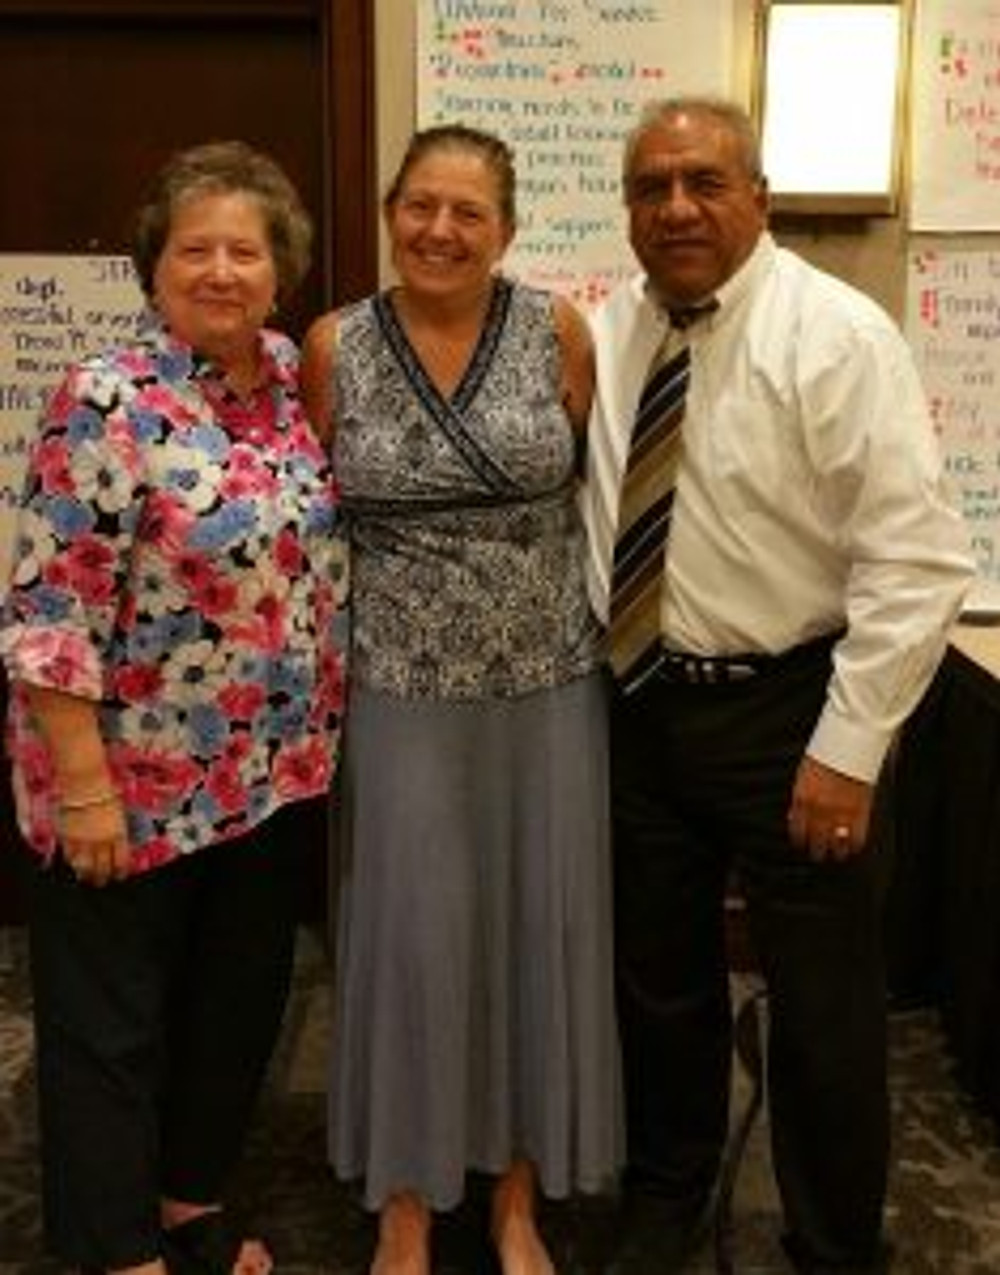 Preschool teacher Kerry Cormier stands with QA Manager Beth Zinkand and CEO Dr. Jose Villa.